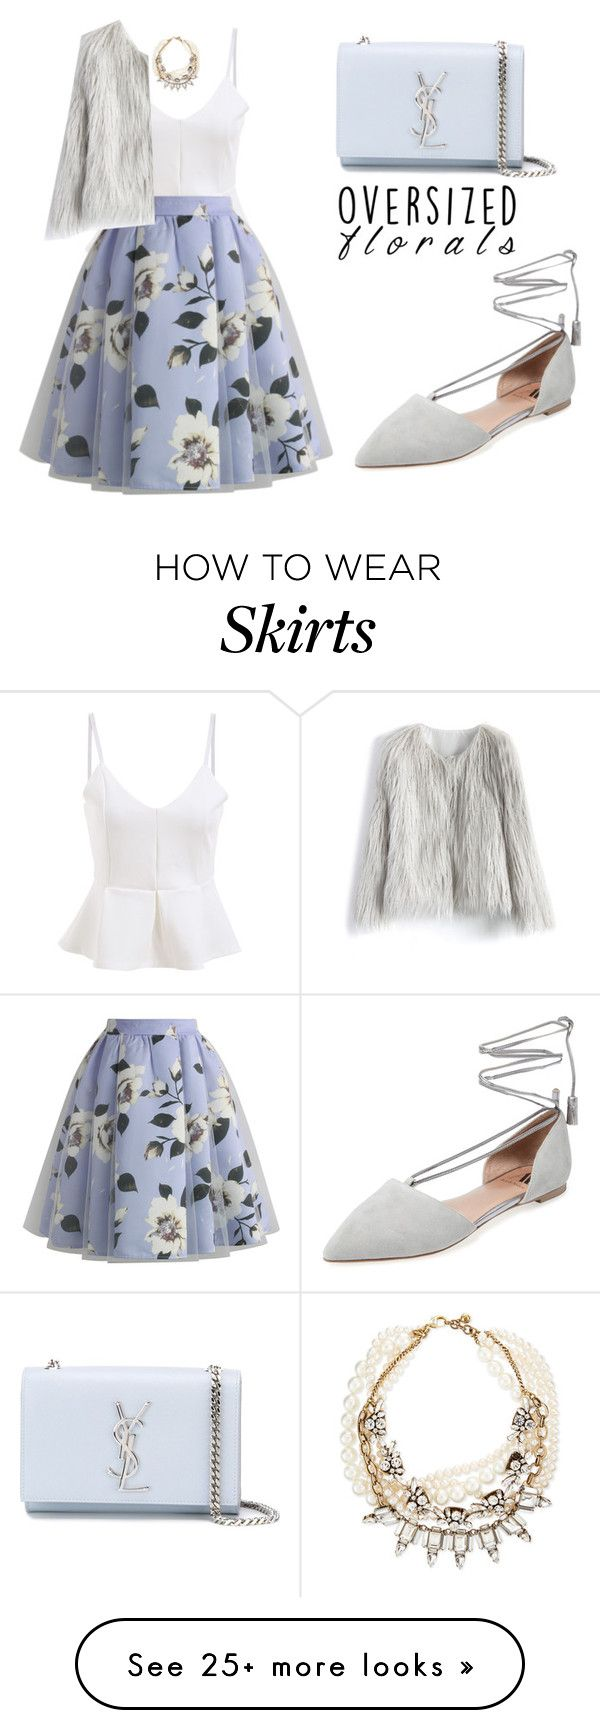 """""""Oversized Florals"""" by tania-alves on Polyvore featuring Chicwish, Ava & Aiden, Yves Saint Laurent, Lulu Frost and oversizedflorals"""